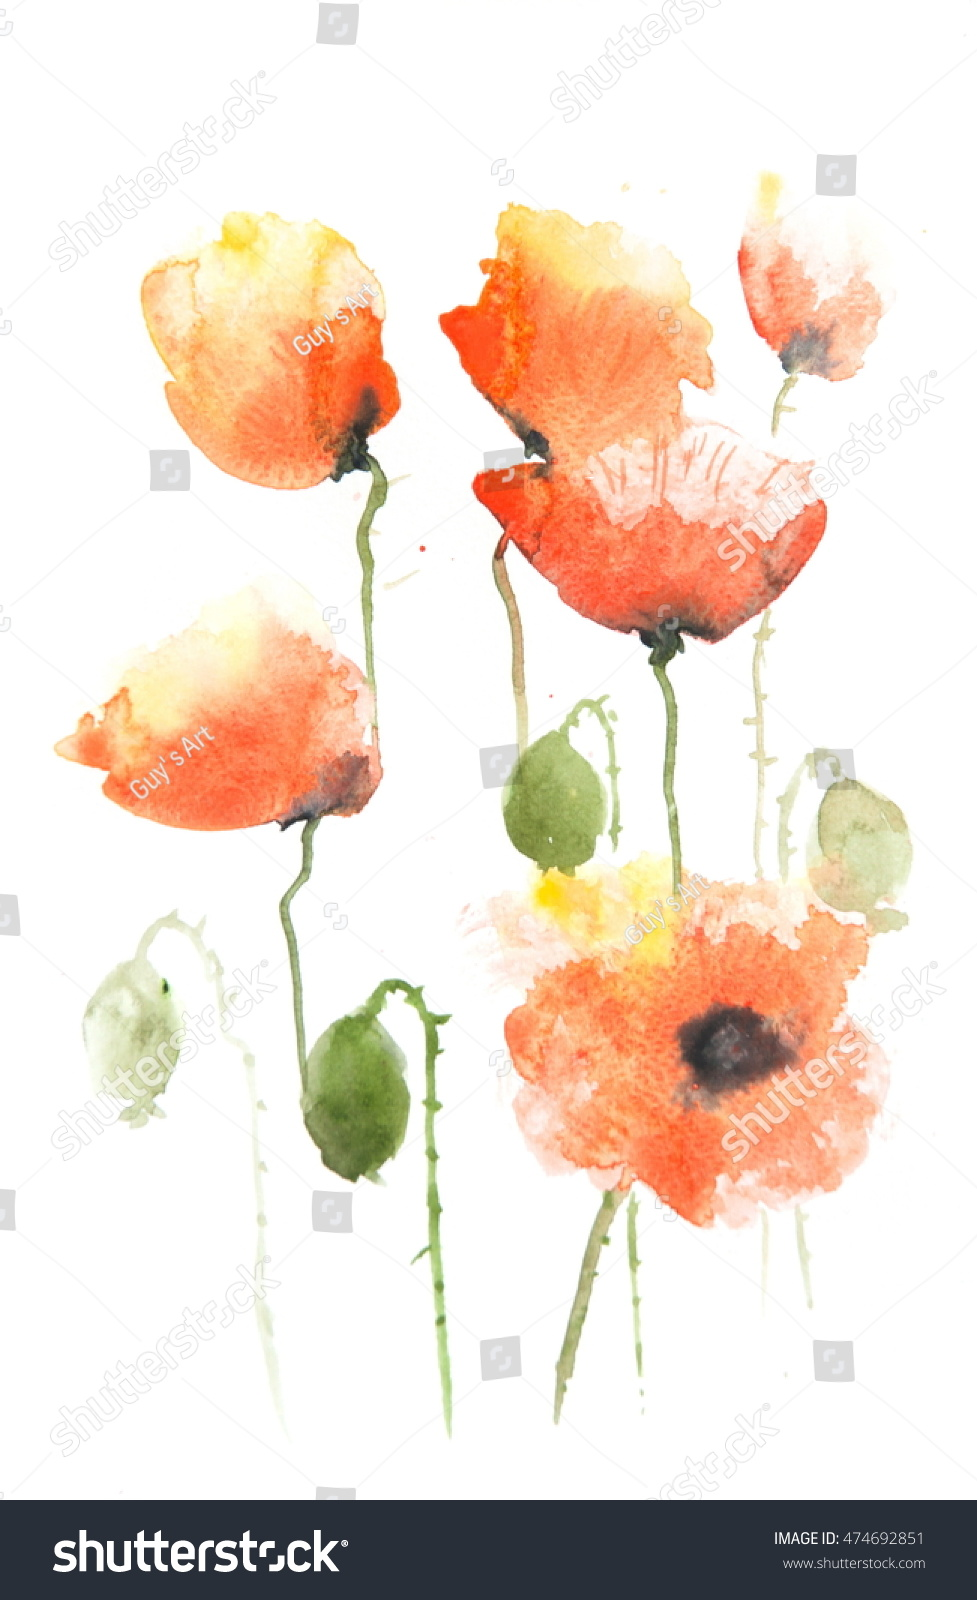 Stylized Poppies On White Flower Painting Stock Illustration